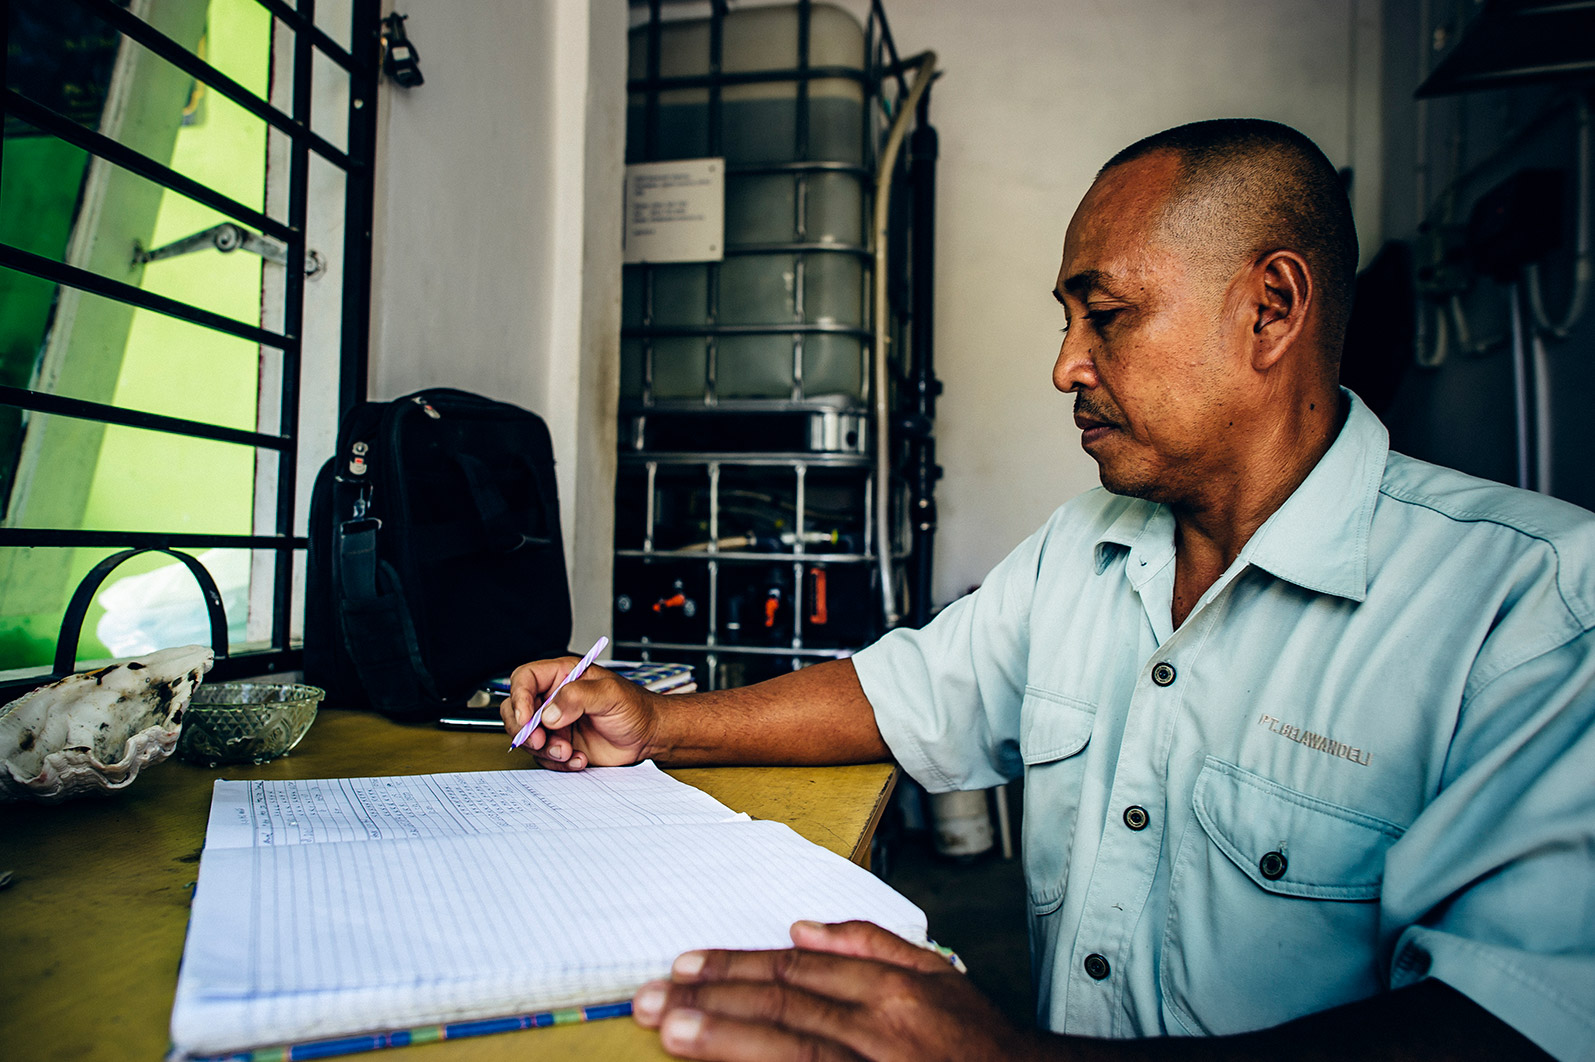 An operator calculates expenses for the safe water treatment system.